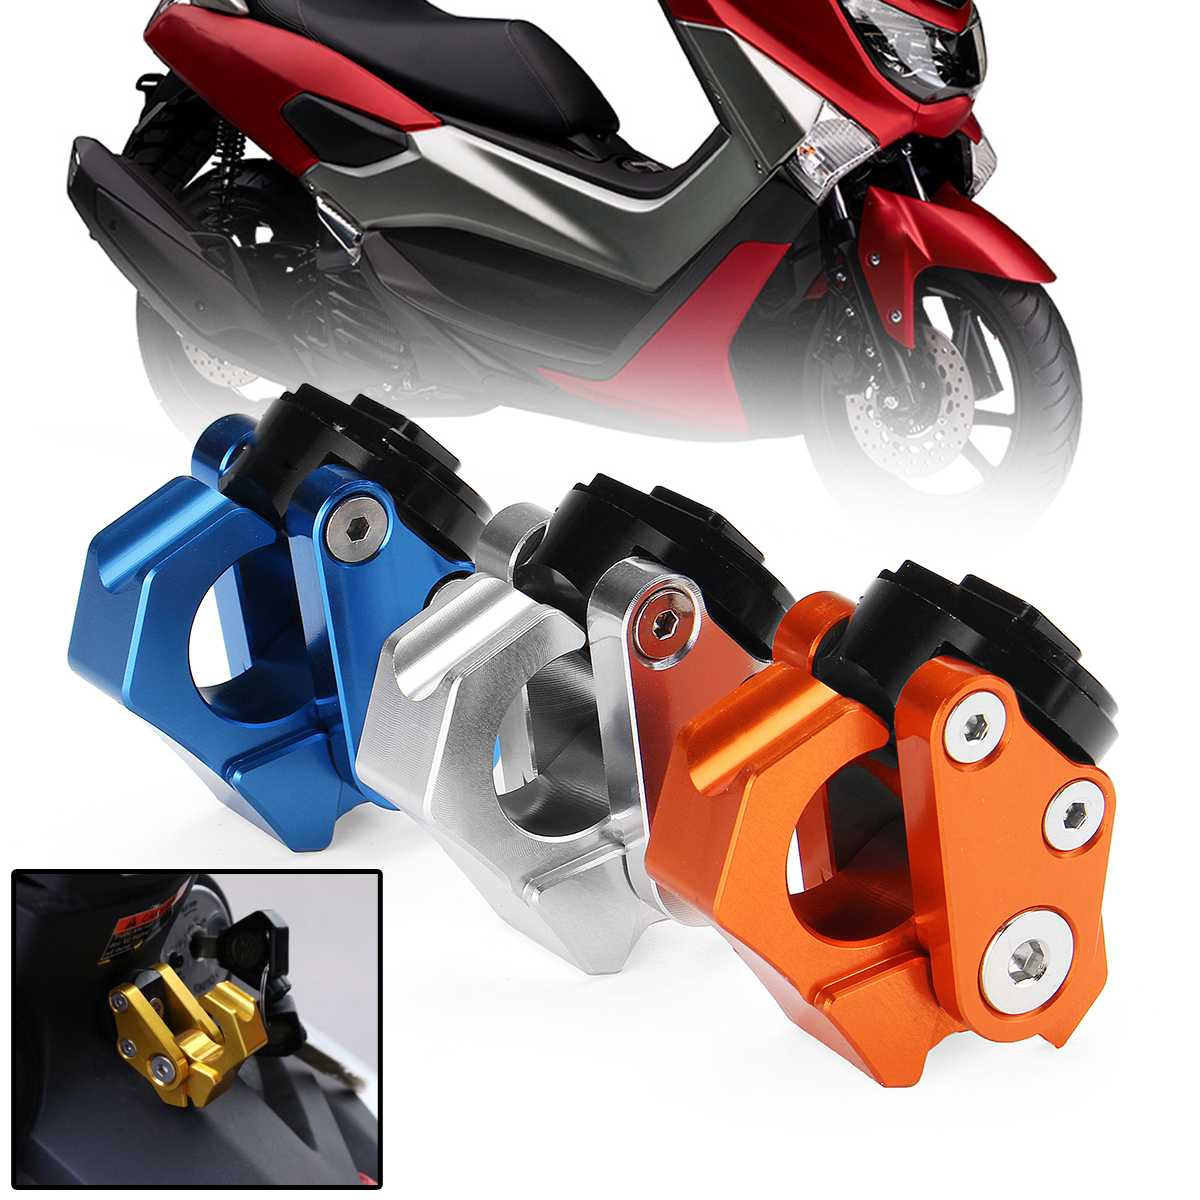 Motorcycle Scooter Accessories Convenience Hook Hanger Screws for <font><b>YAMAHA</b></font> NMAX155 <font><b>NMAX</b></font> 155 N-Max 155 N-MAX155 NAMX <font><b>125</b></font> N-MAX <font><b>125</b></font> image